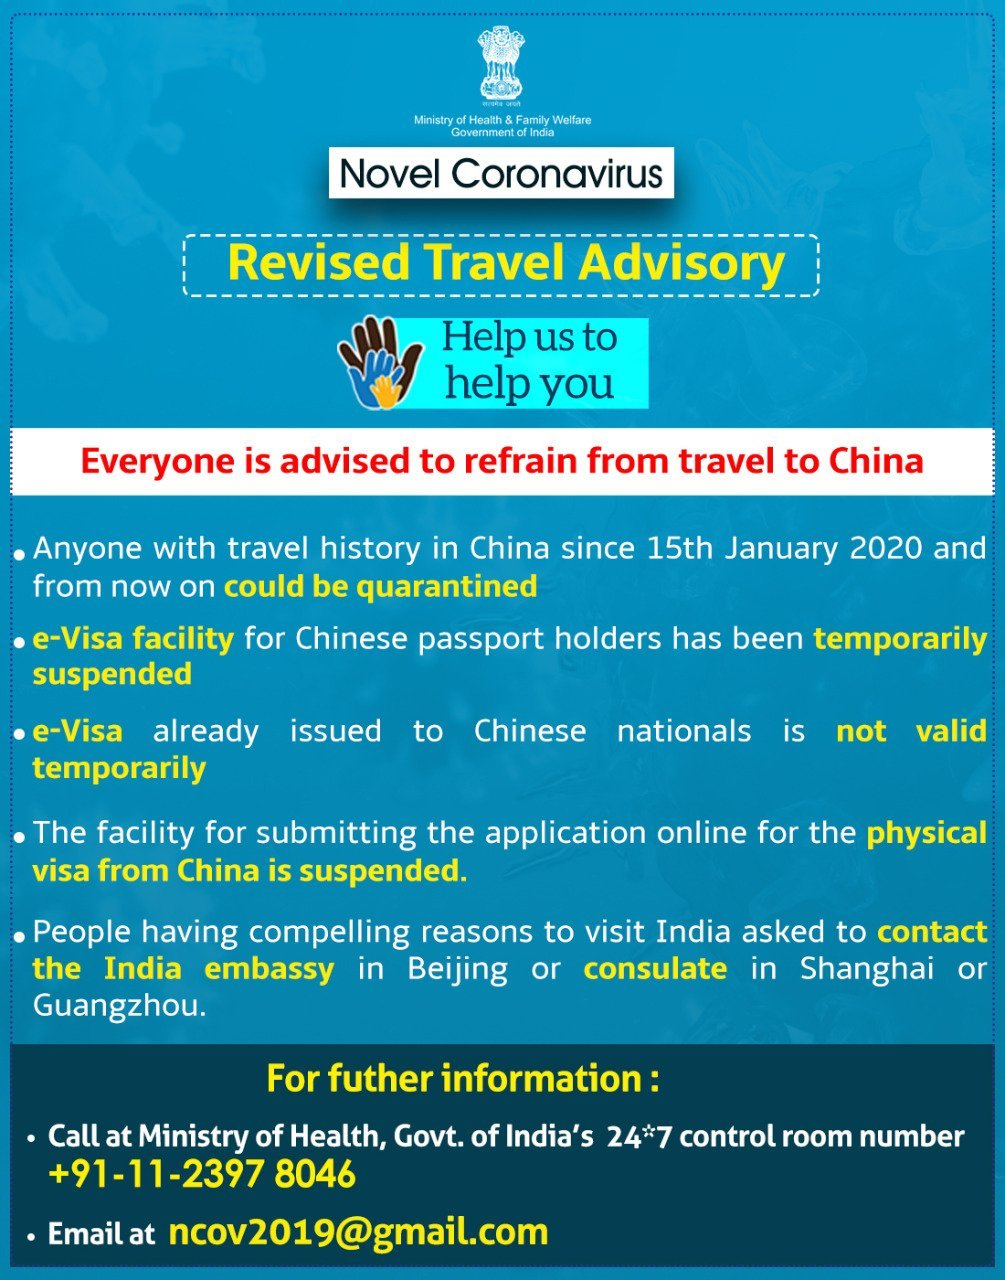 Union Ministry of Health and Family Welfare issues revised travel advisory over CoronaVirus.